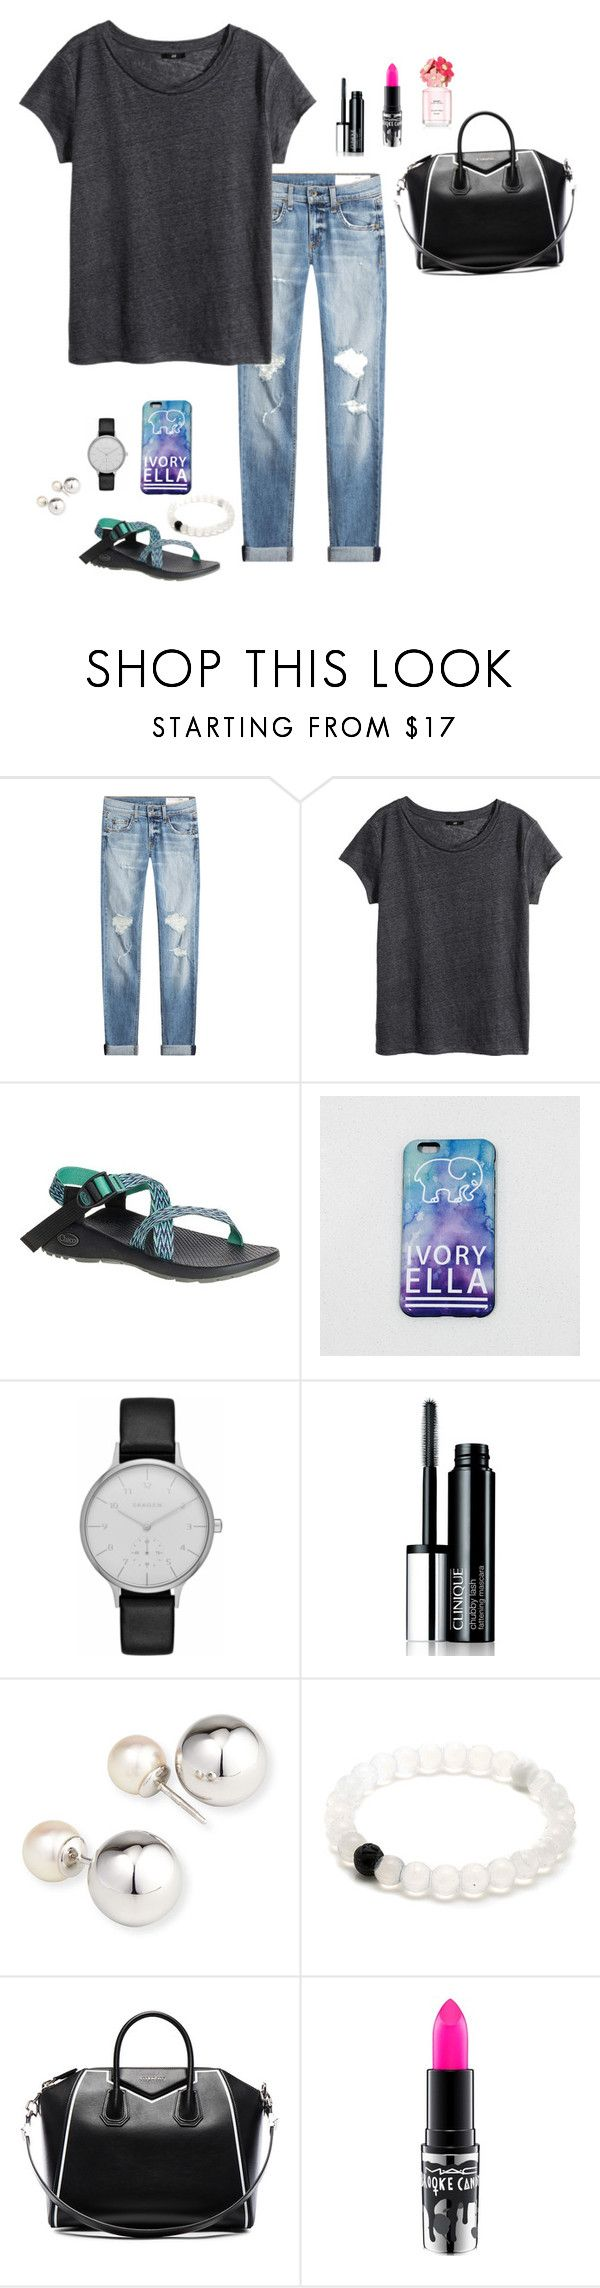 """Does anyone know where I can find Chacos for cheap?"" by oliviacat1215 ❤ liked on Polyvore featuring rag & bone, H&M, Chaco, Skagen, Clinique, Yoko London, Givenchy, MAC Cosmetics and Marc Jacobs"